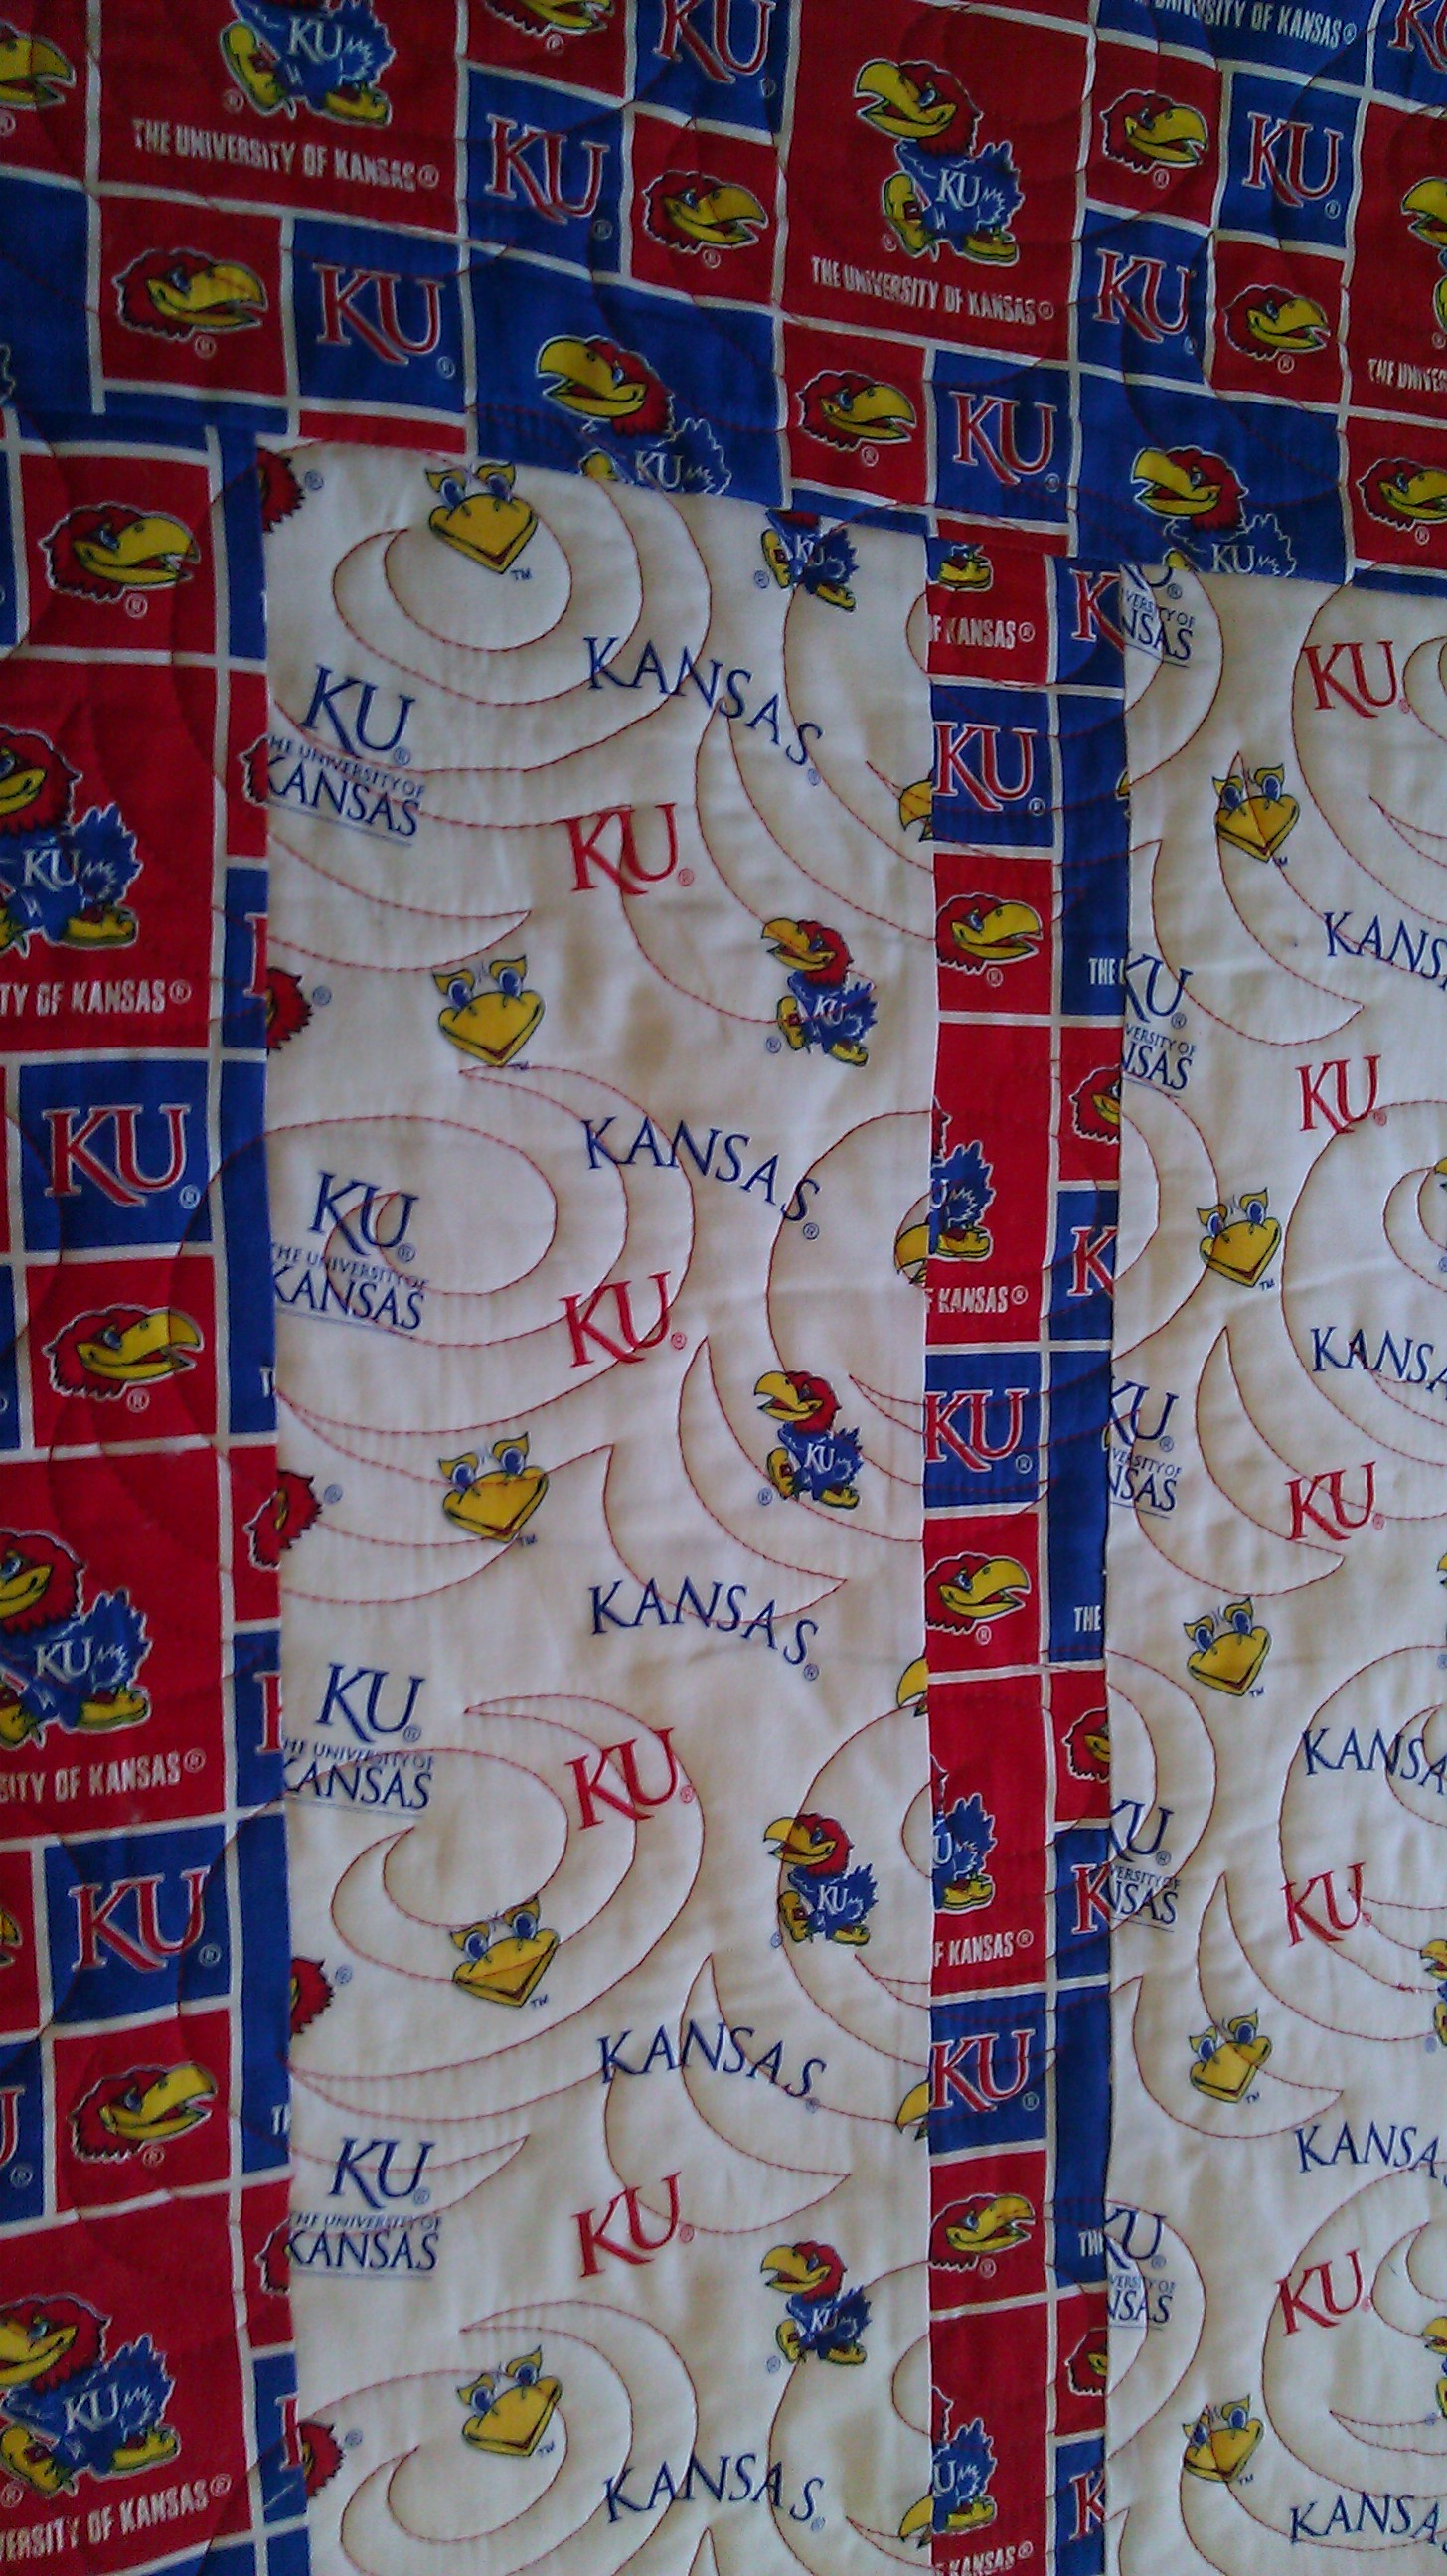 Kansas University Quilt - Jaded Spade Creations